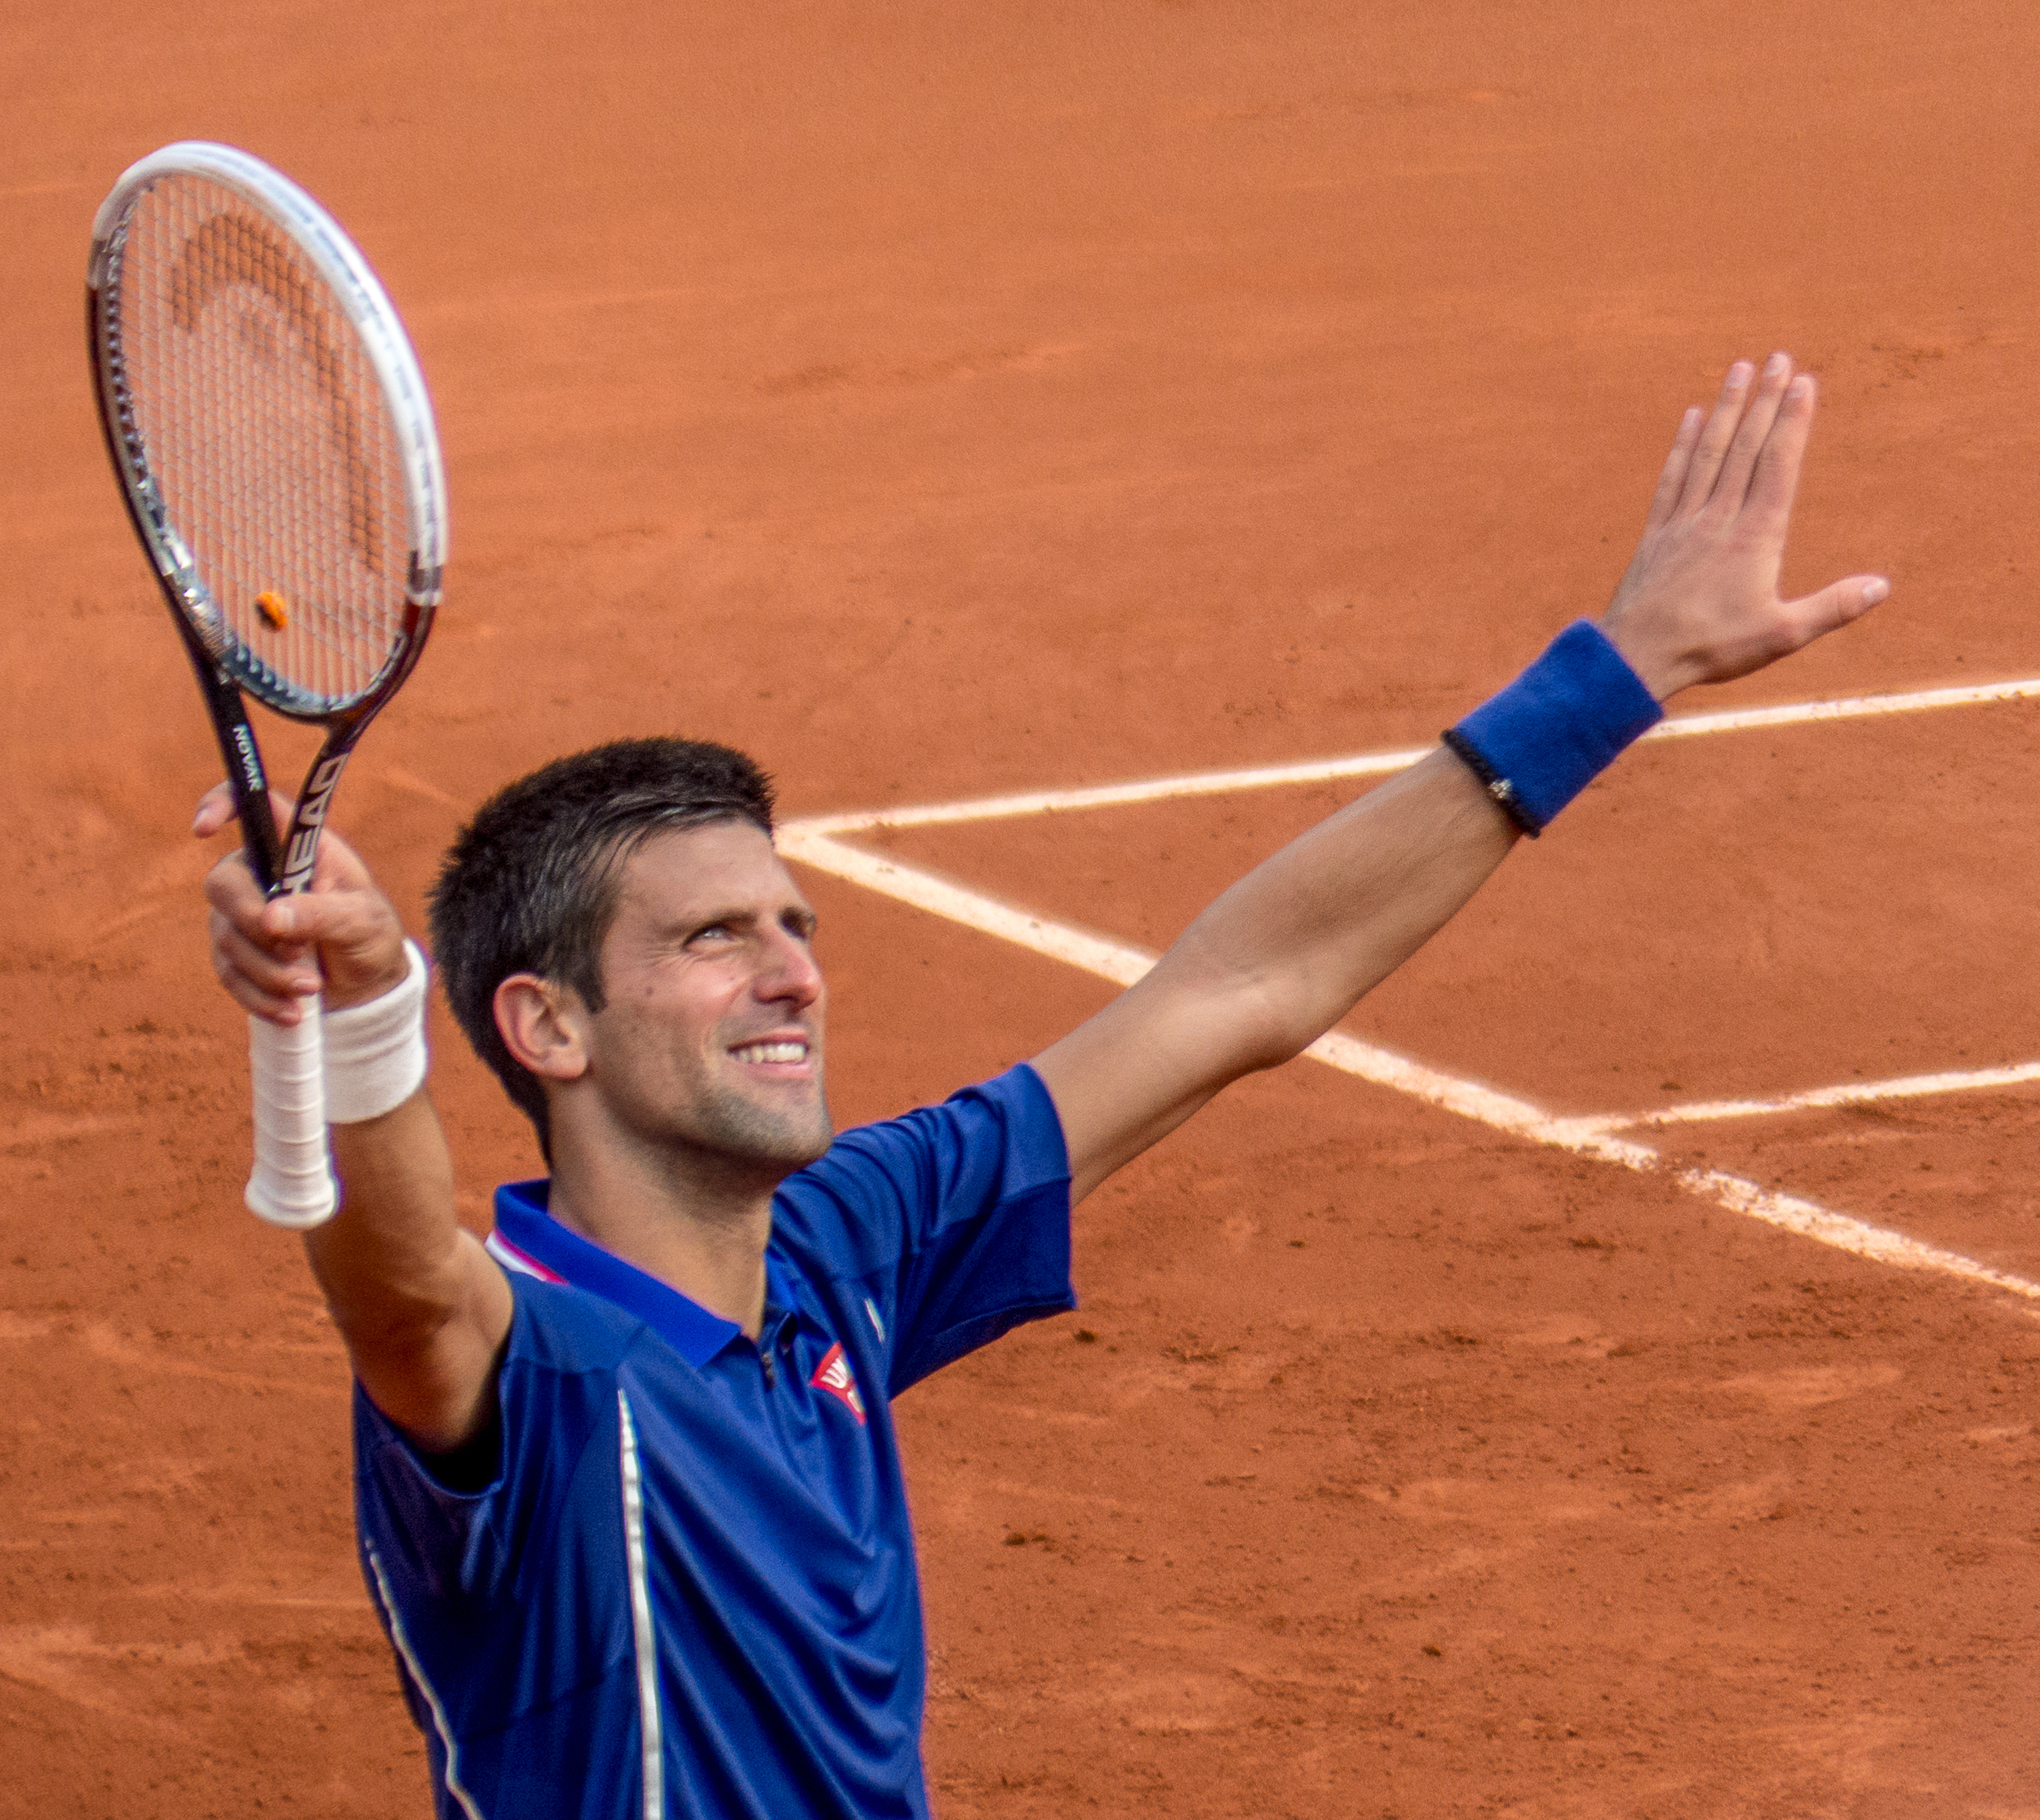 Nole at the French Open, the one Slam title that has thus far eluded him.